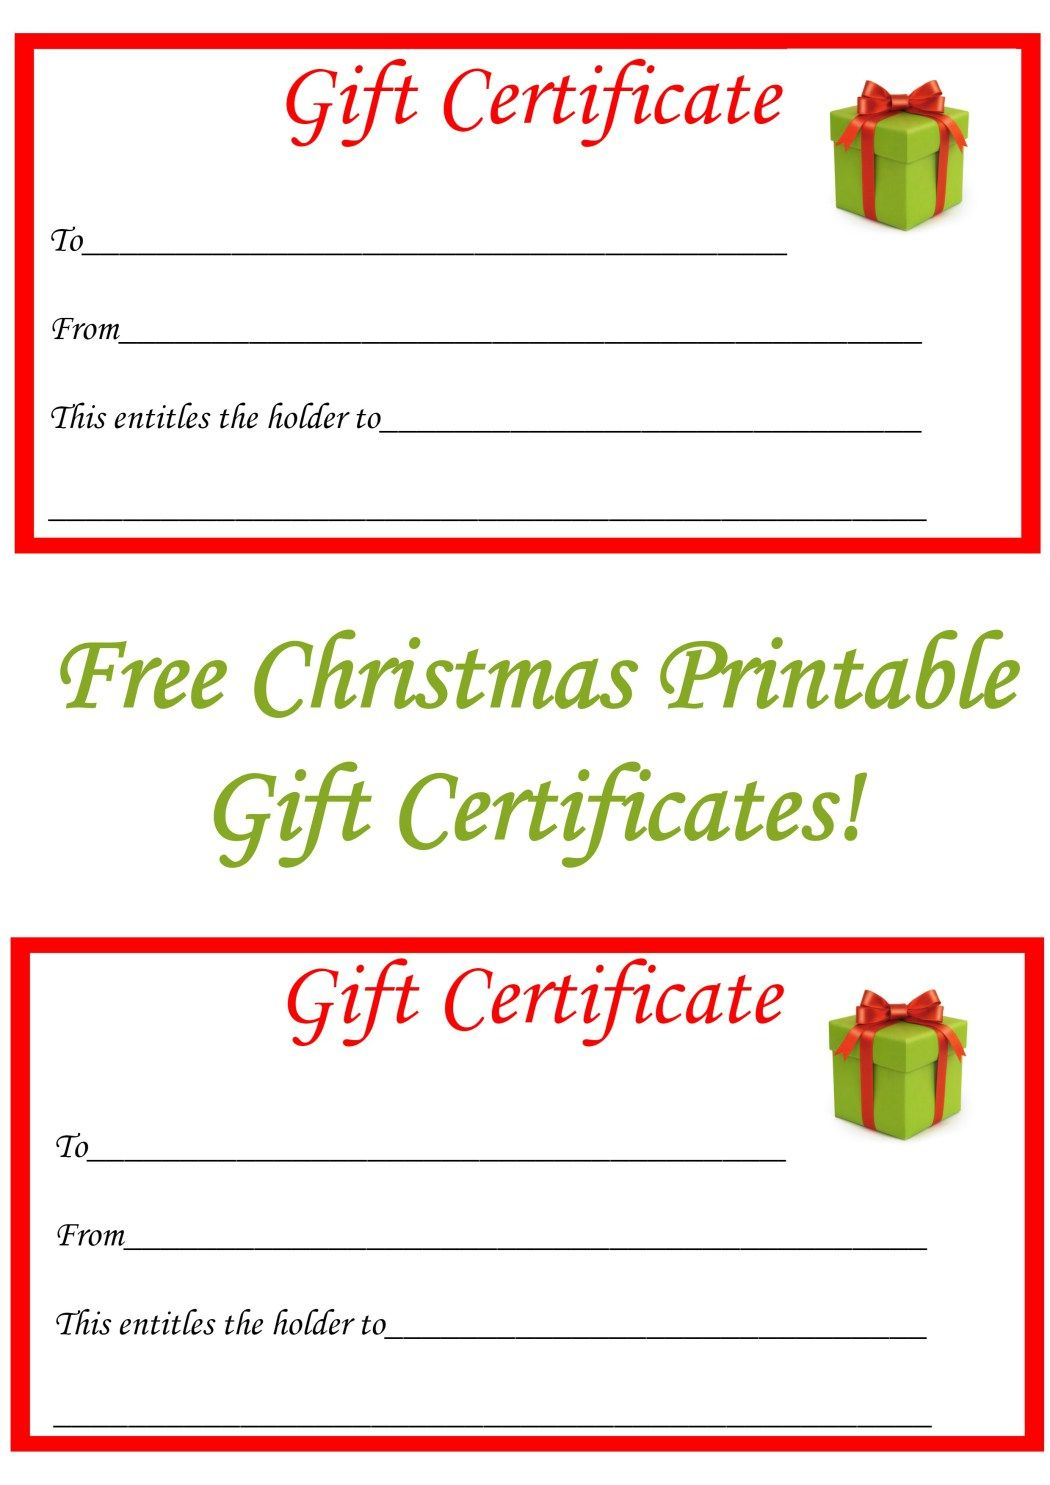 Free Christmas Printable Gift Certificates Gift Ideas Pinterest